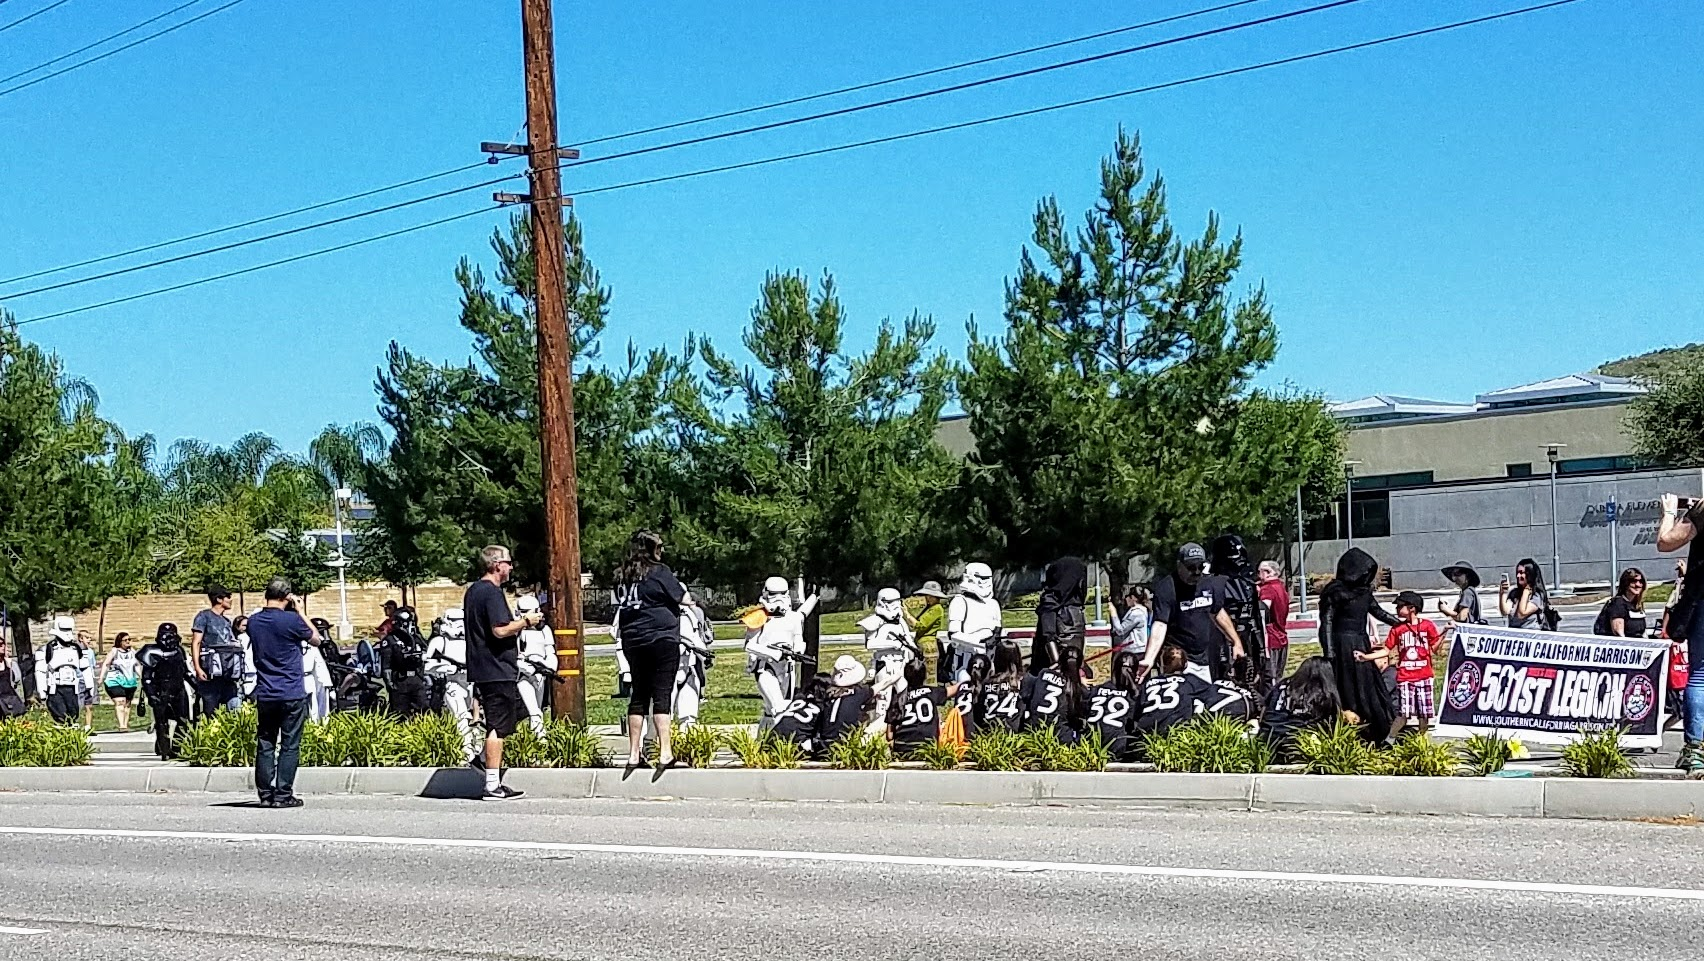 Wannabe Star Wars Storm Troopers (Photo Courtesy of Dena Sommer)